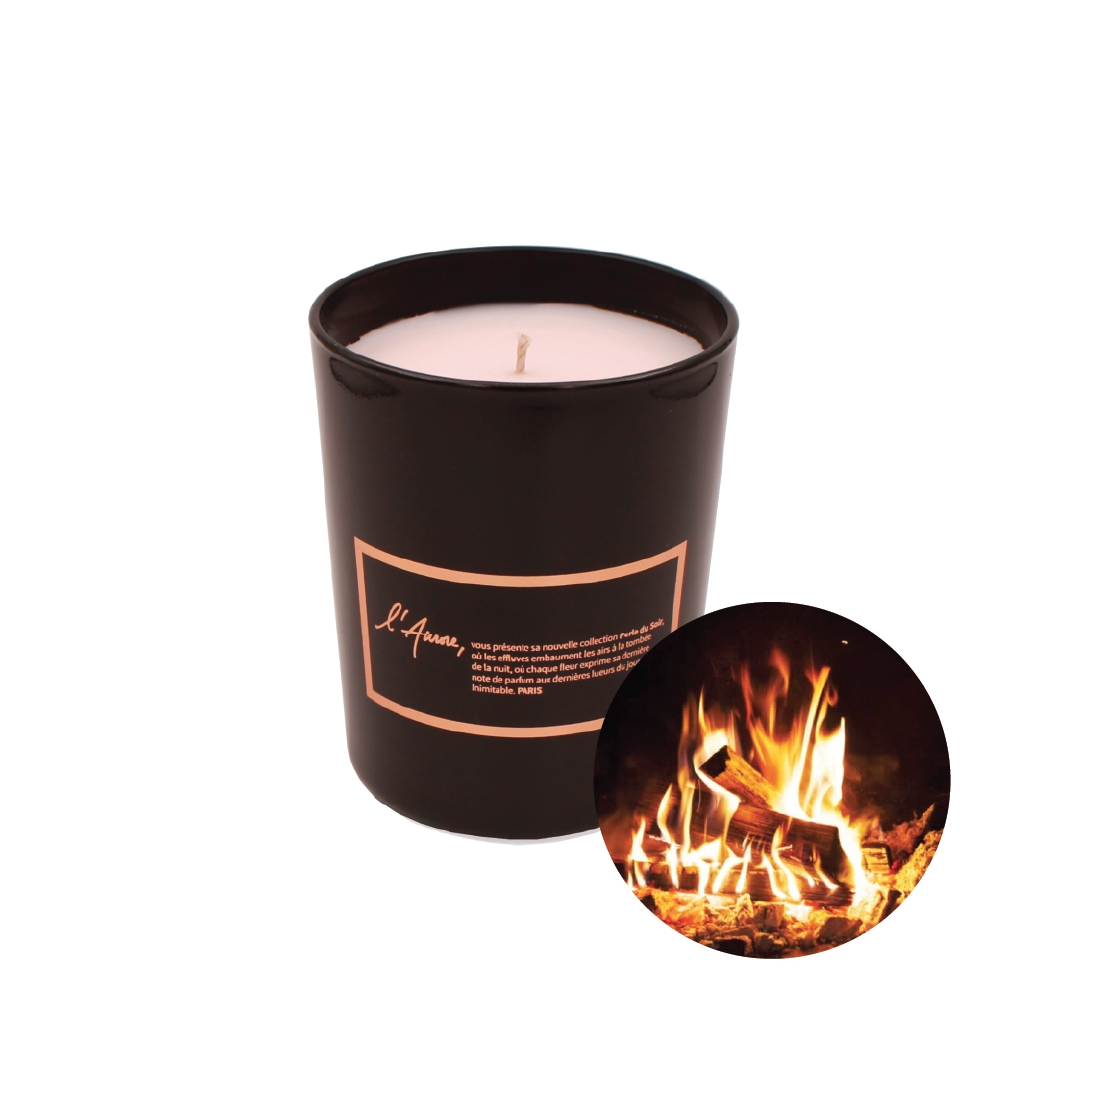 Scented candle AU COIN DU FEU (Wood Fire)